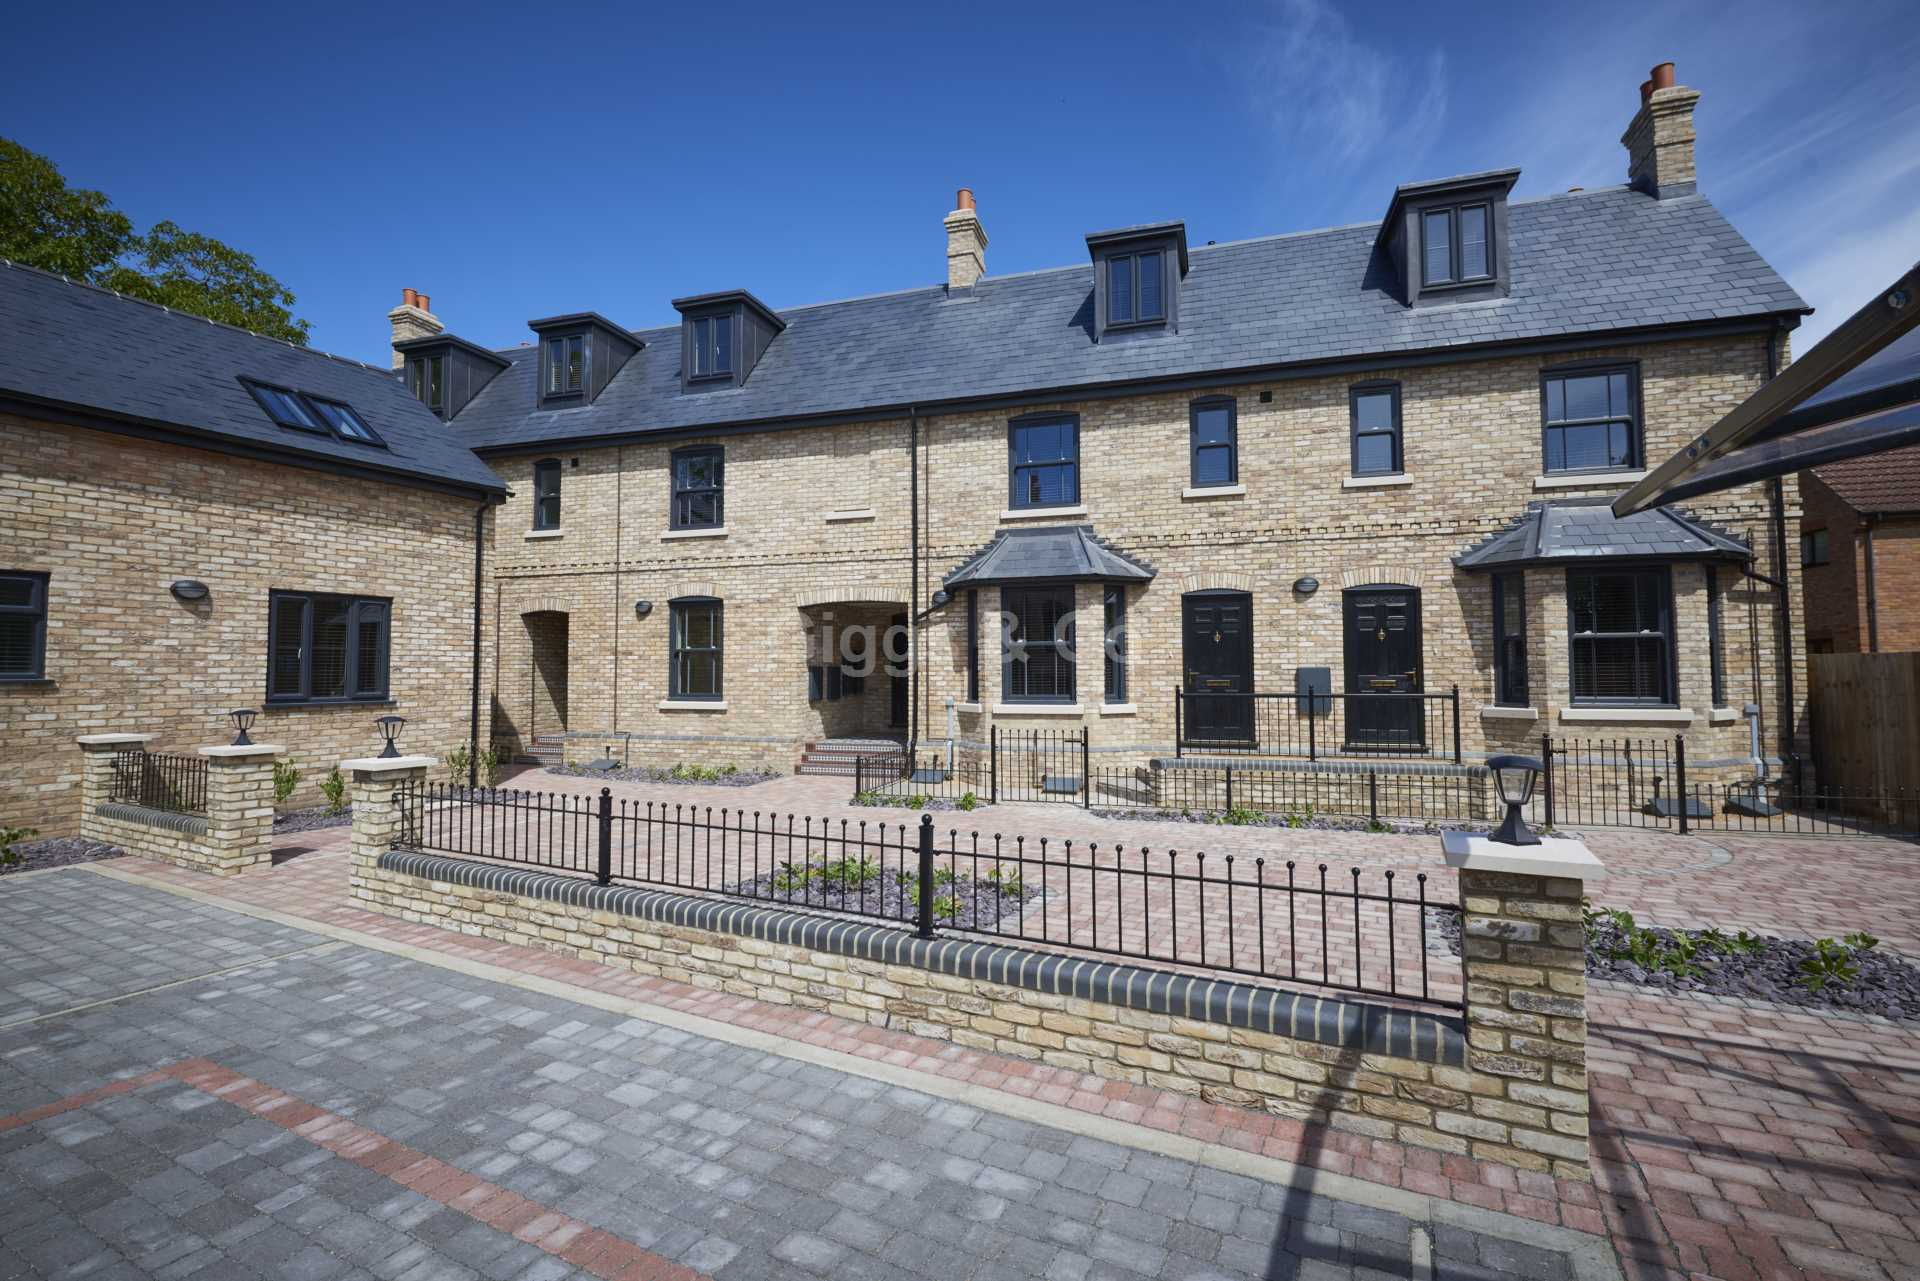 1 bed apartment to rent in East Street, St Ives, PE27